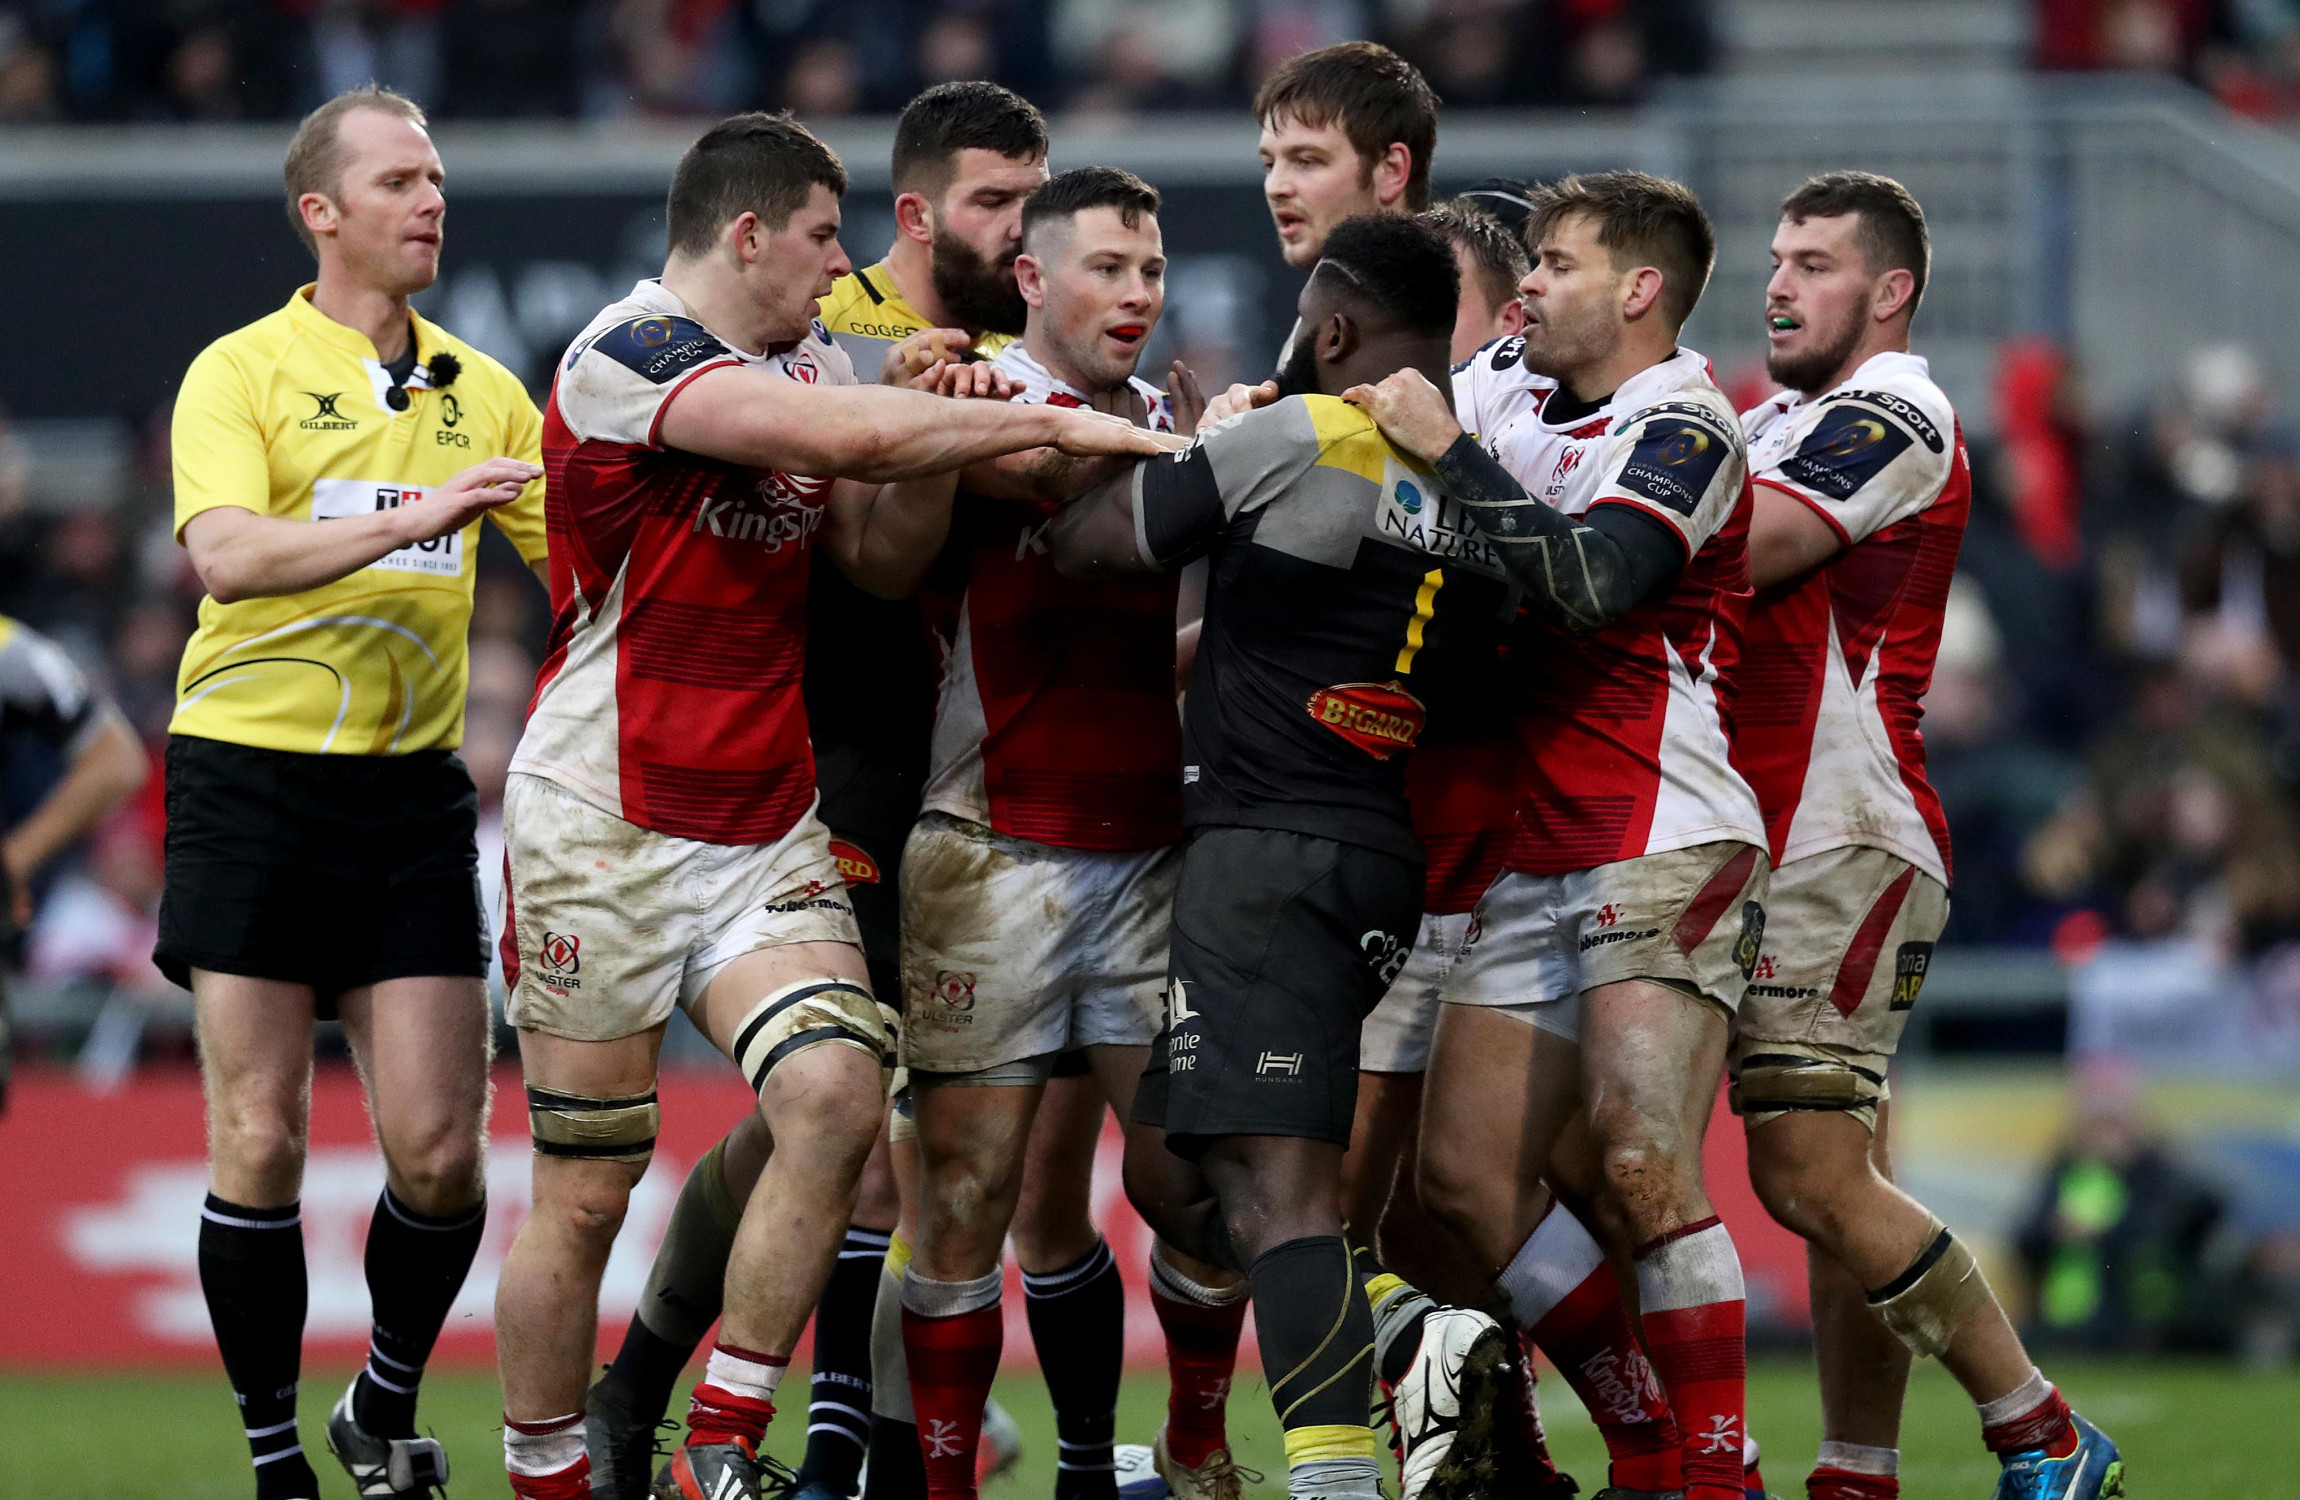 Ulster boost Champions Cup quarter-final hopes with victory over La Rochelle